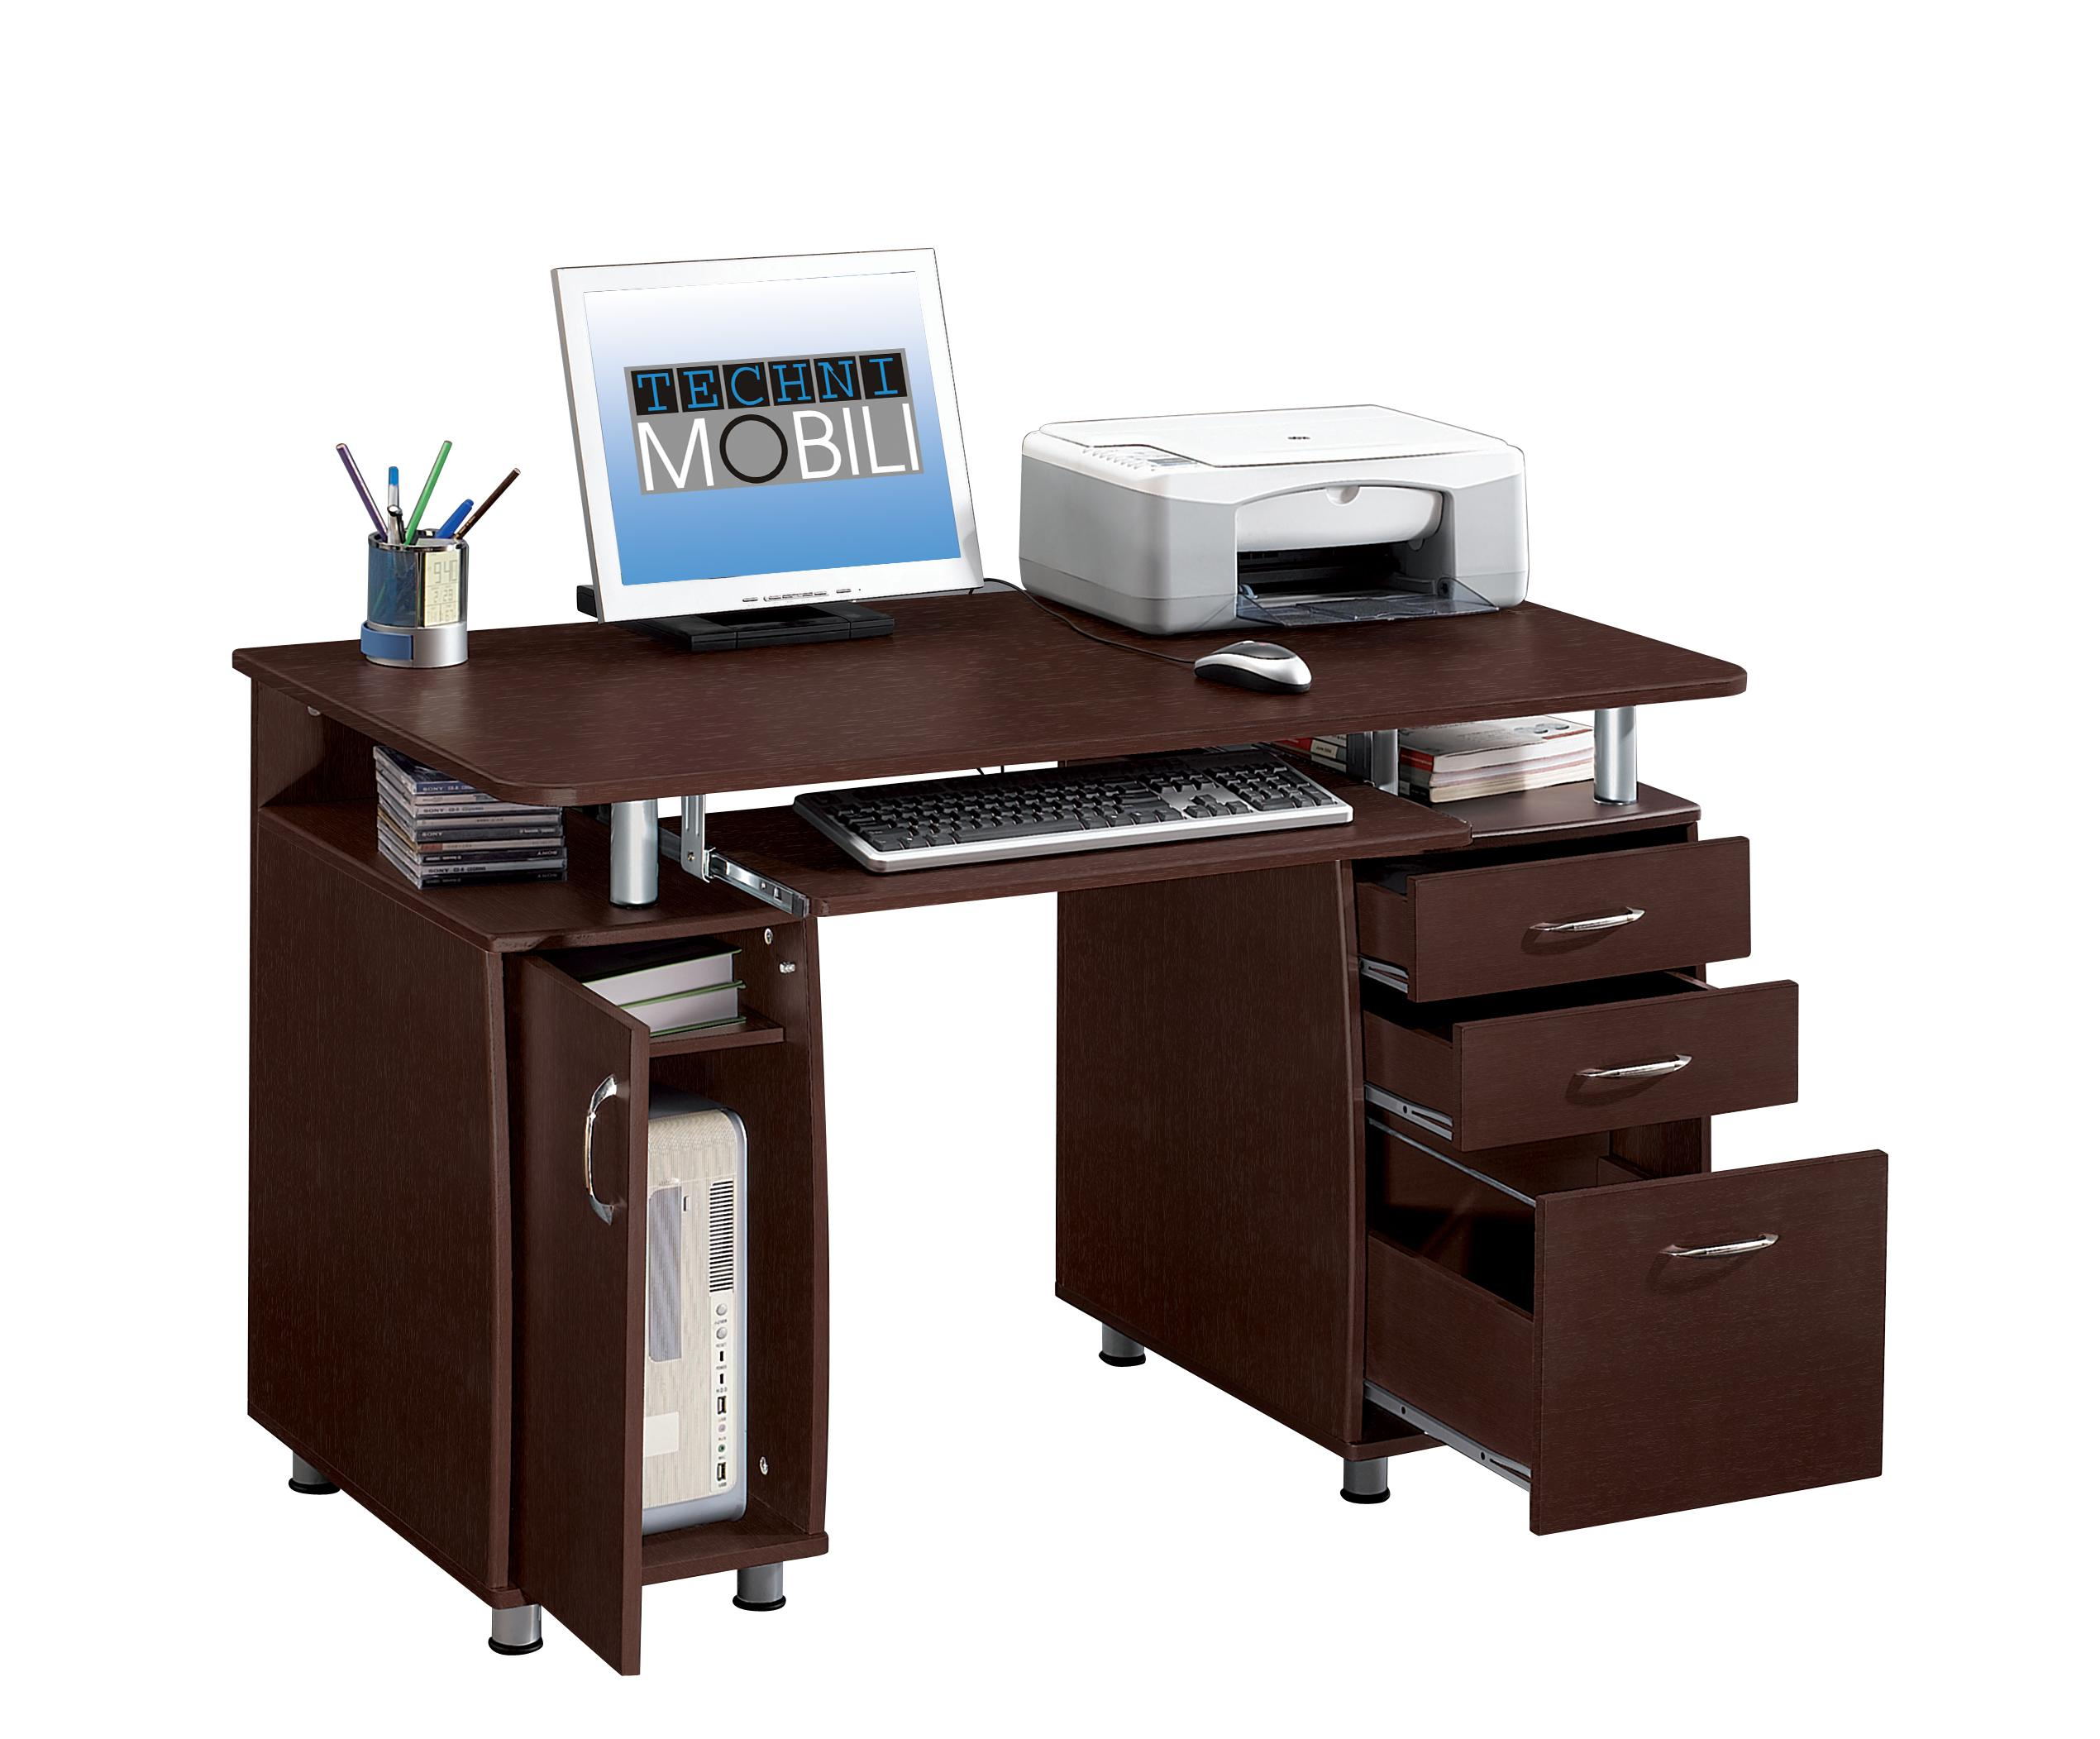 computer desks at office depot honey maple techni mobili multifunction double pedestal storage portable computer desk office depot folding computer desks at office depot modern green house